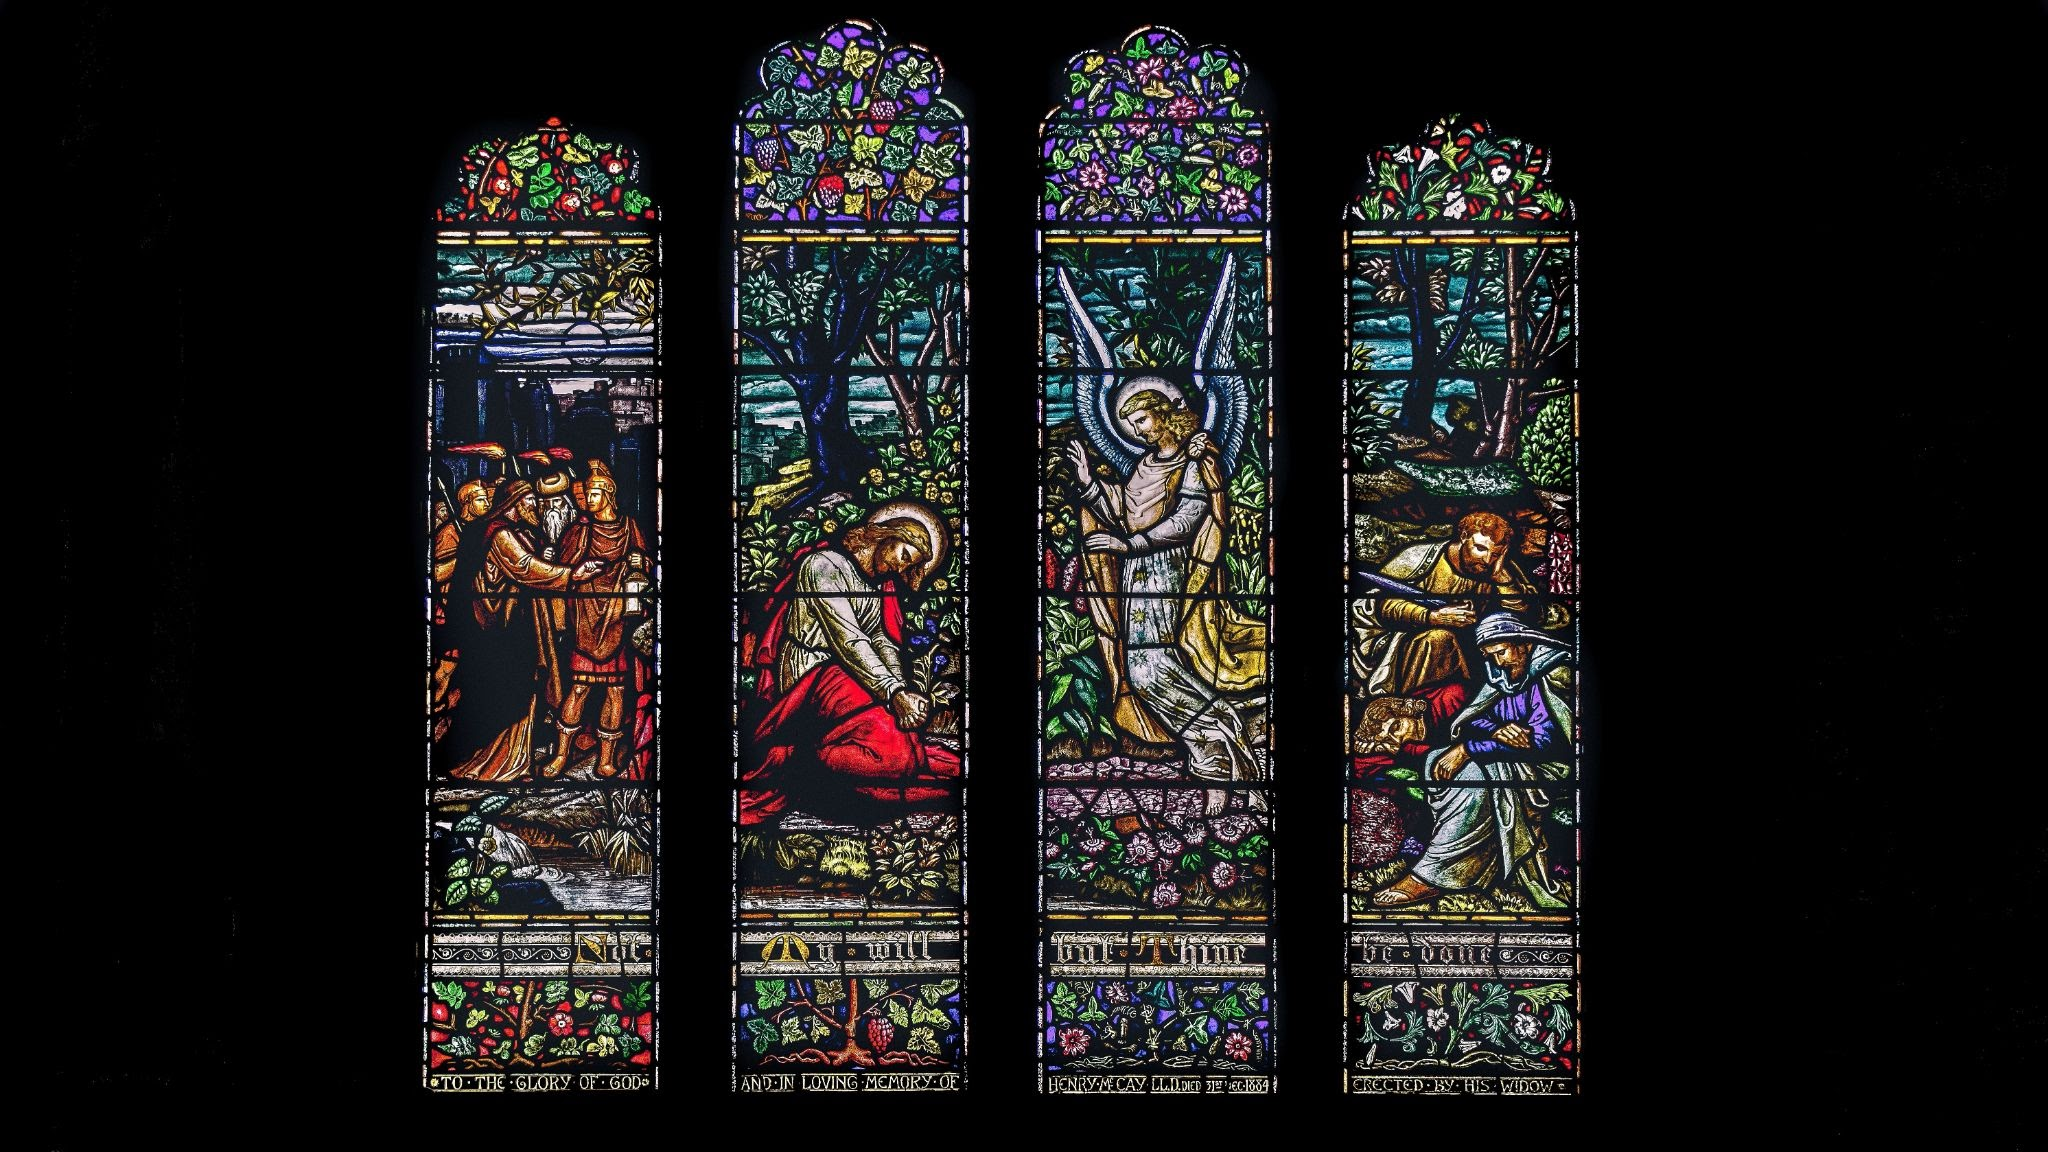 Stain-glass window depicting Jesus and his disciples